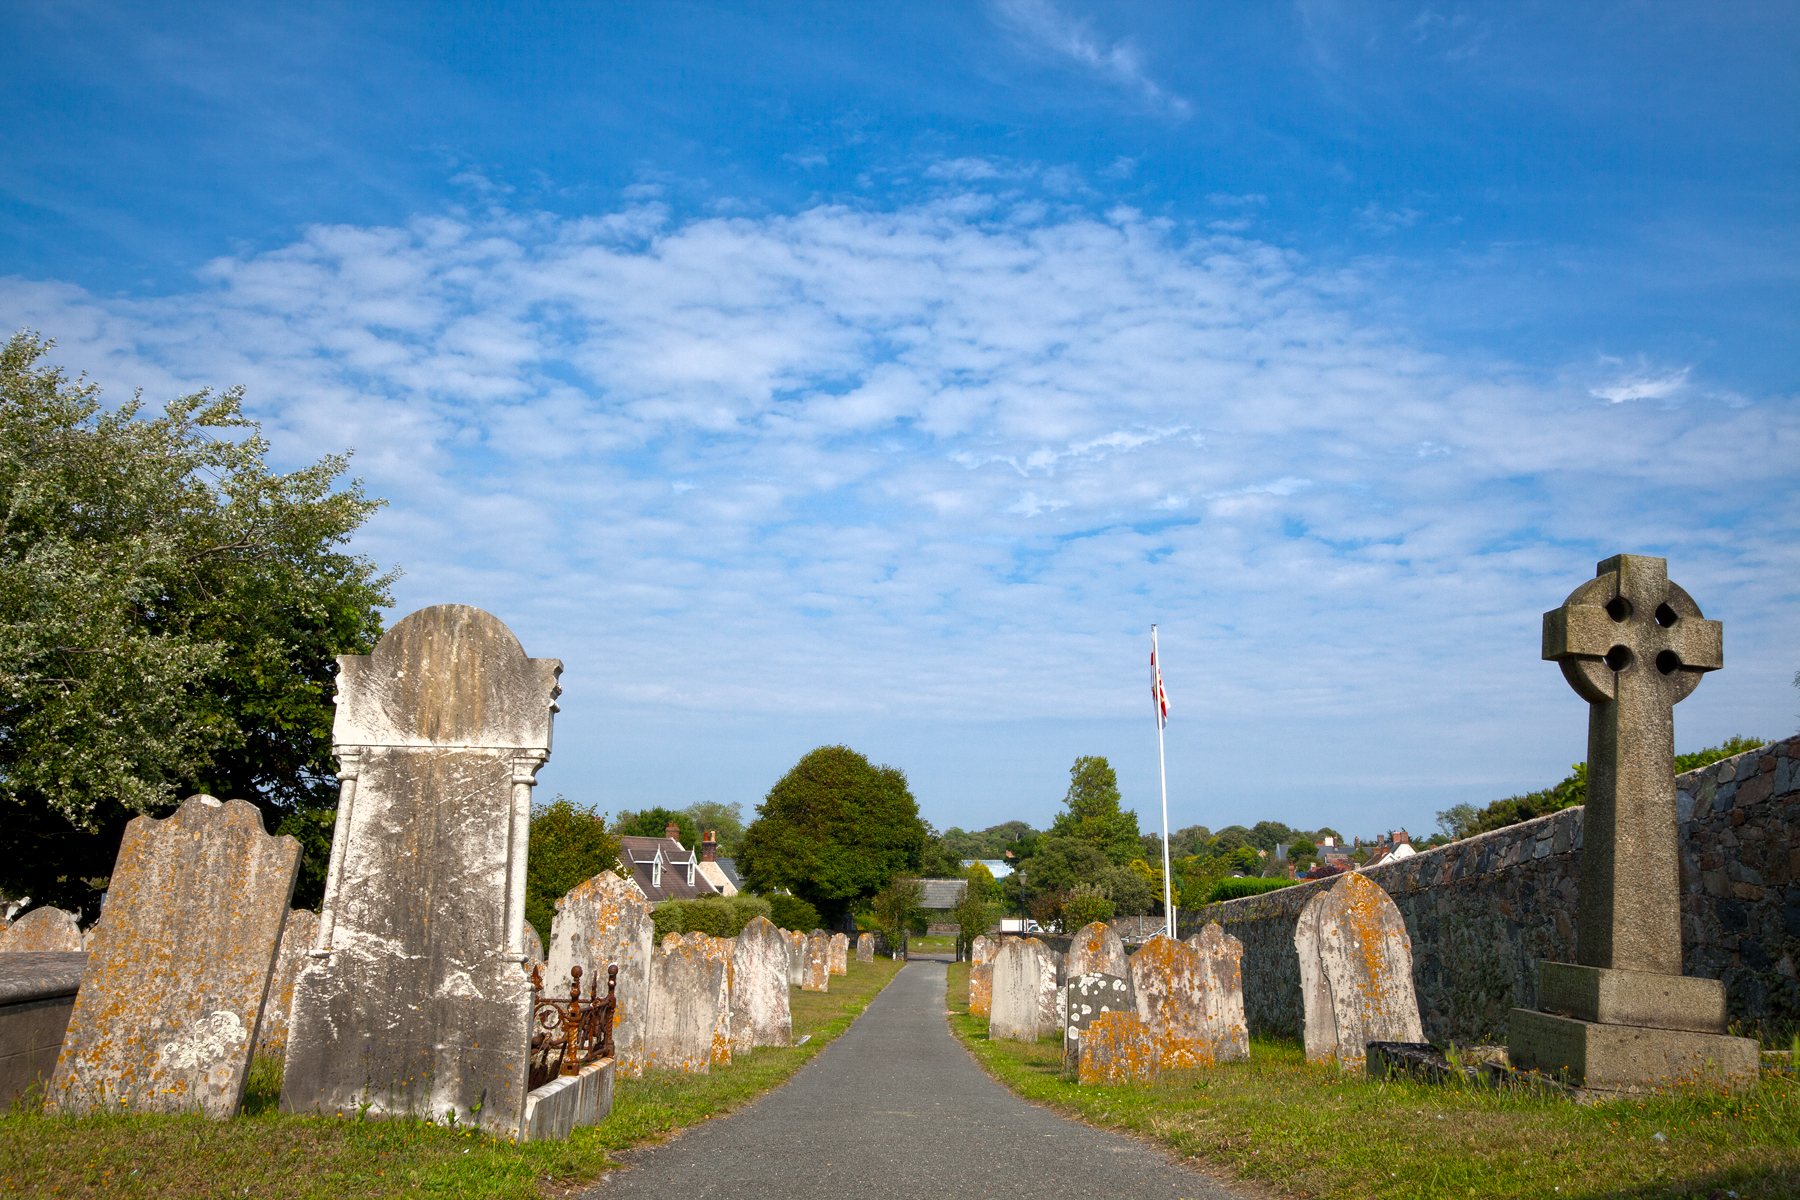 Guernsey cemetery - hdr photo